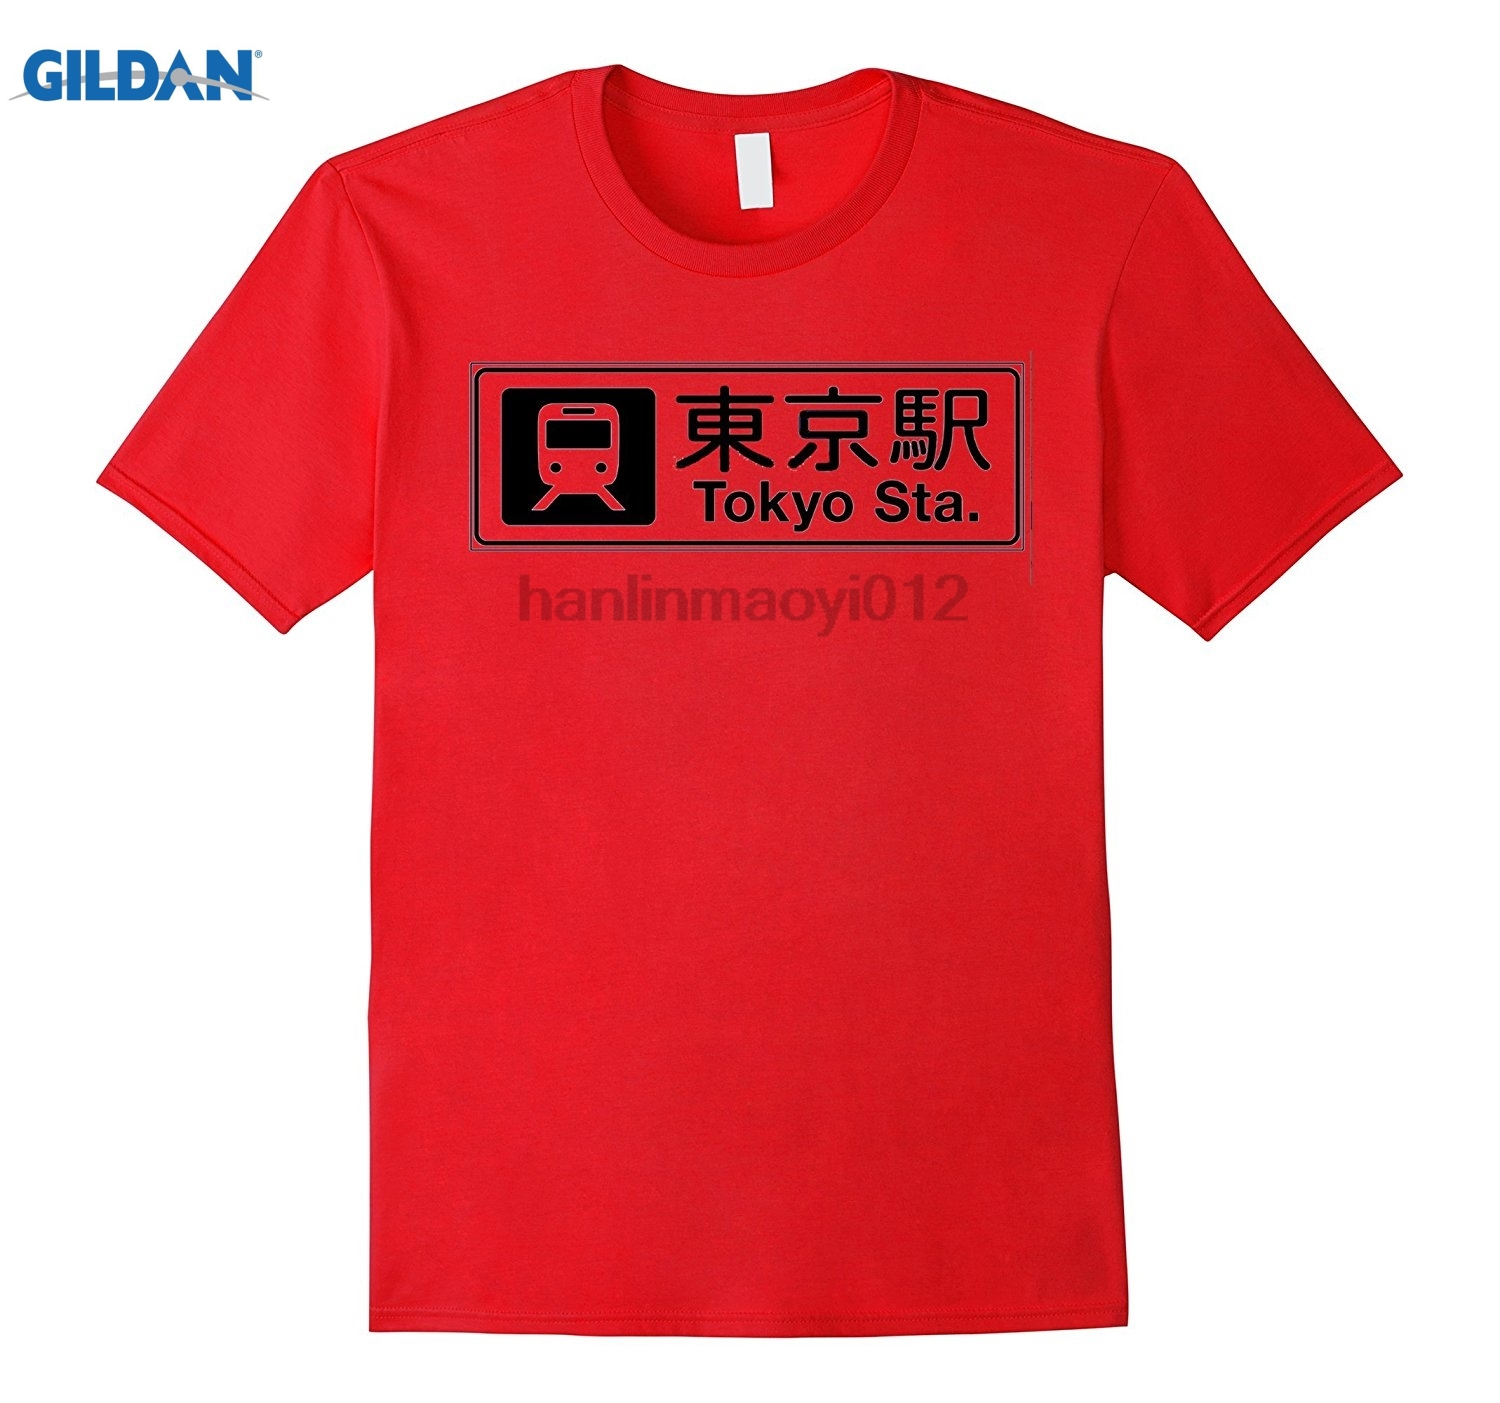 GILDAN Dicky Ticker Tokyo City Station T-shirt Train Womens T-shirt ...